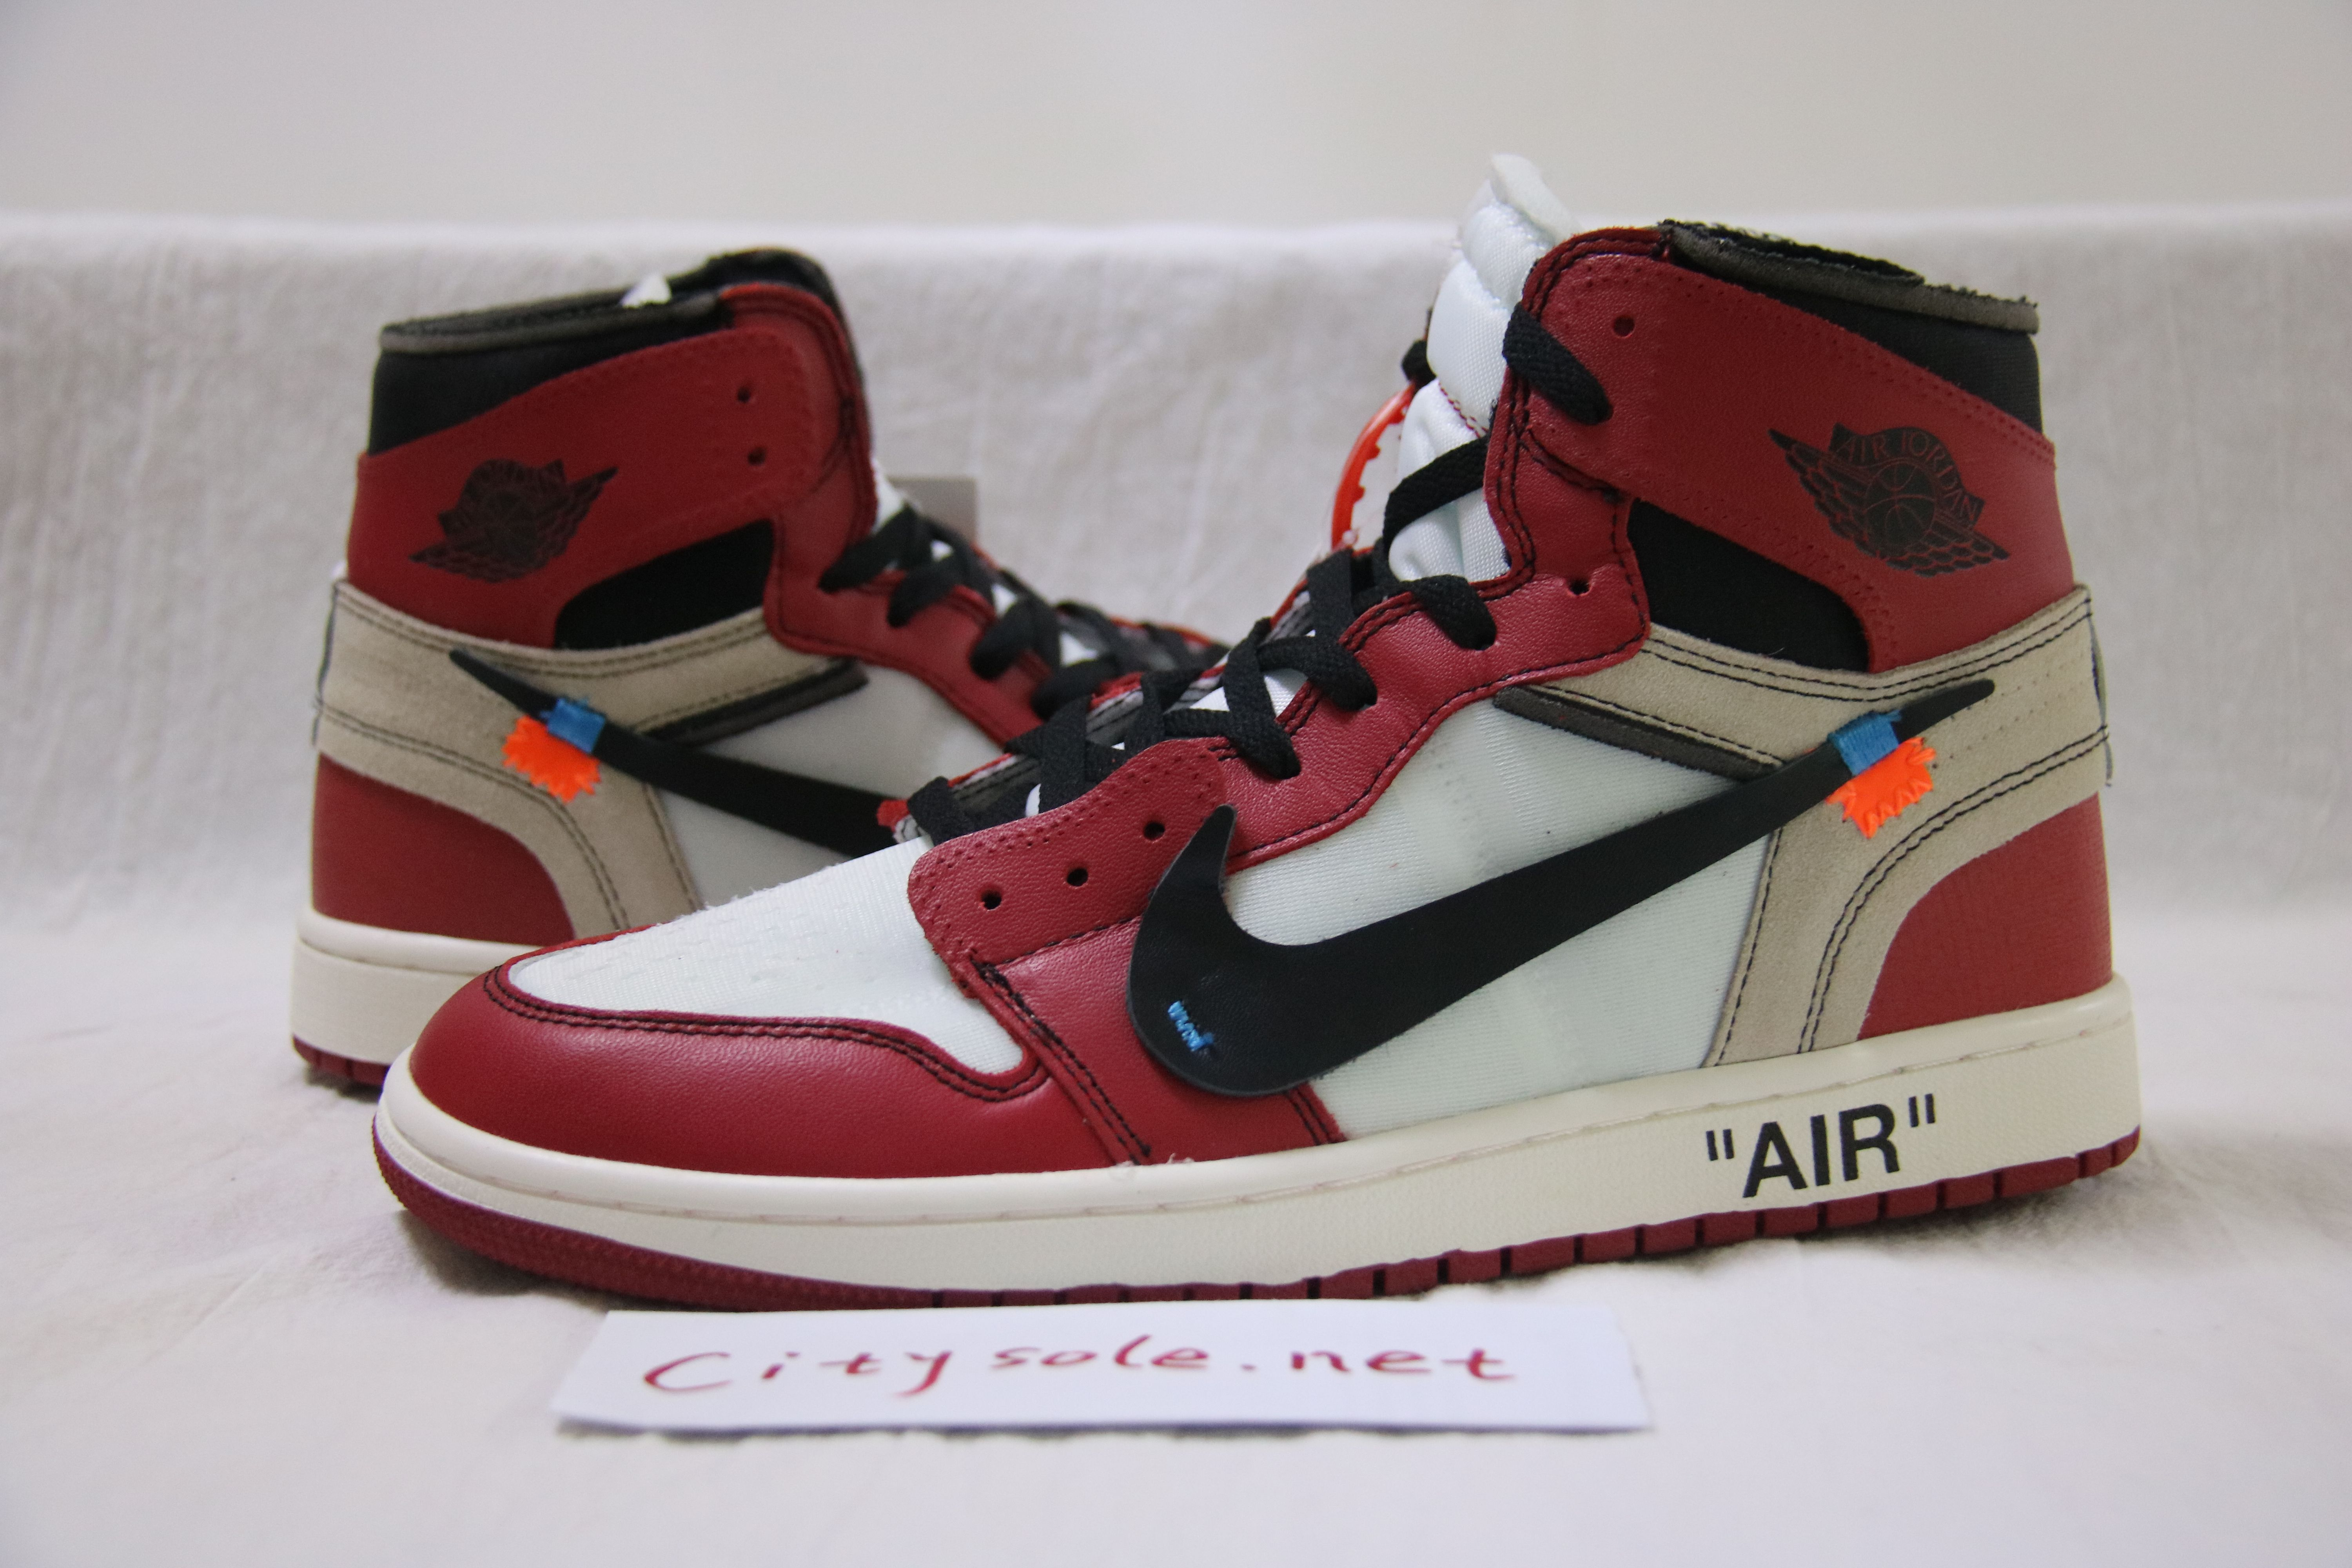 separation shoes ce283 65f84 Exclusive off white nike air jordan 1s red ready to ship from Citysole.net  Email Imessage  citysole.net19 gmail.com Skype  citysole.net19 gmail.com ...